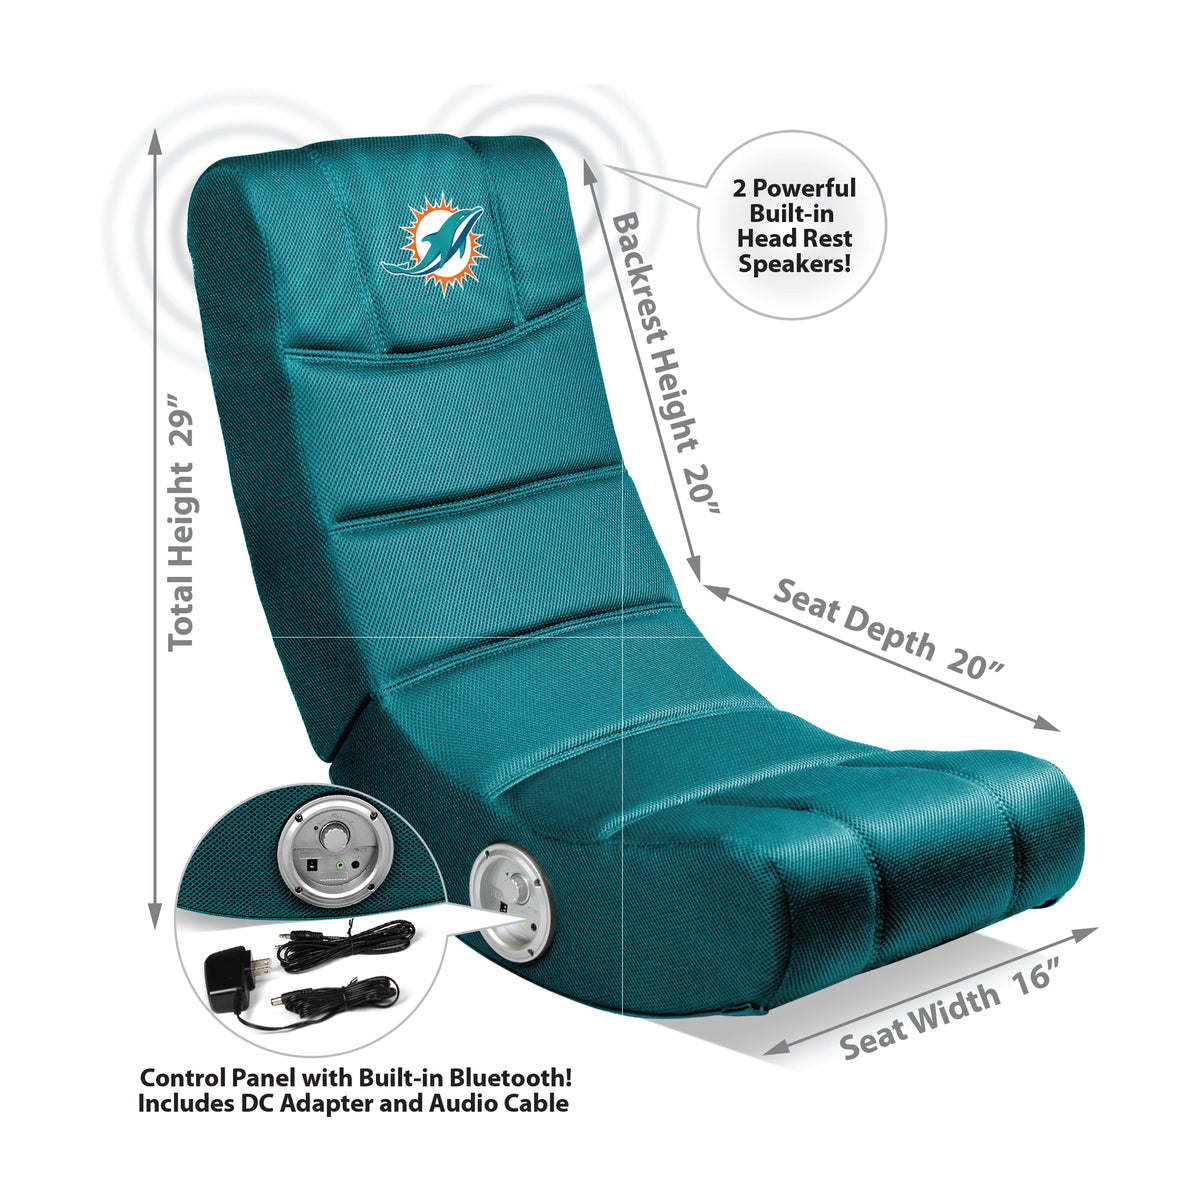 Miami Dolphins Video Chair W/ Blue Tooth